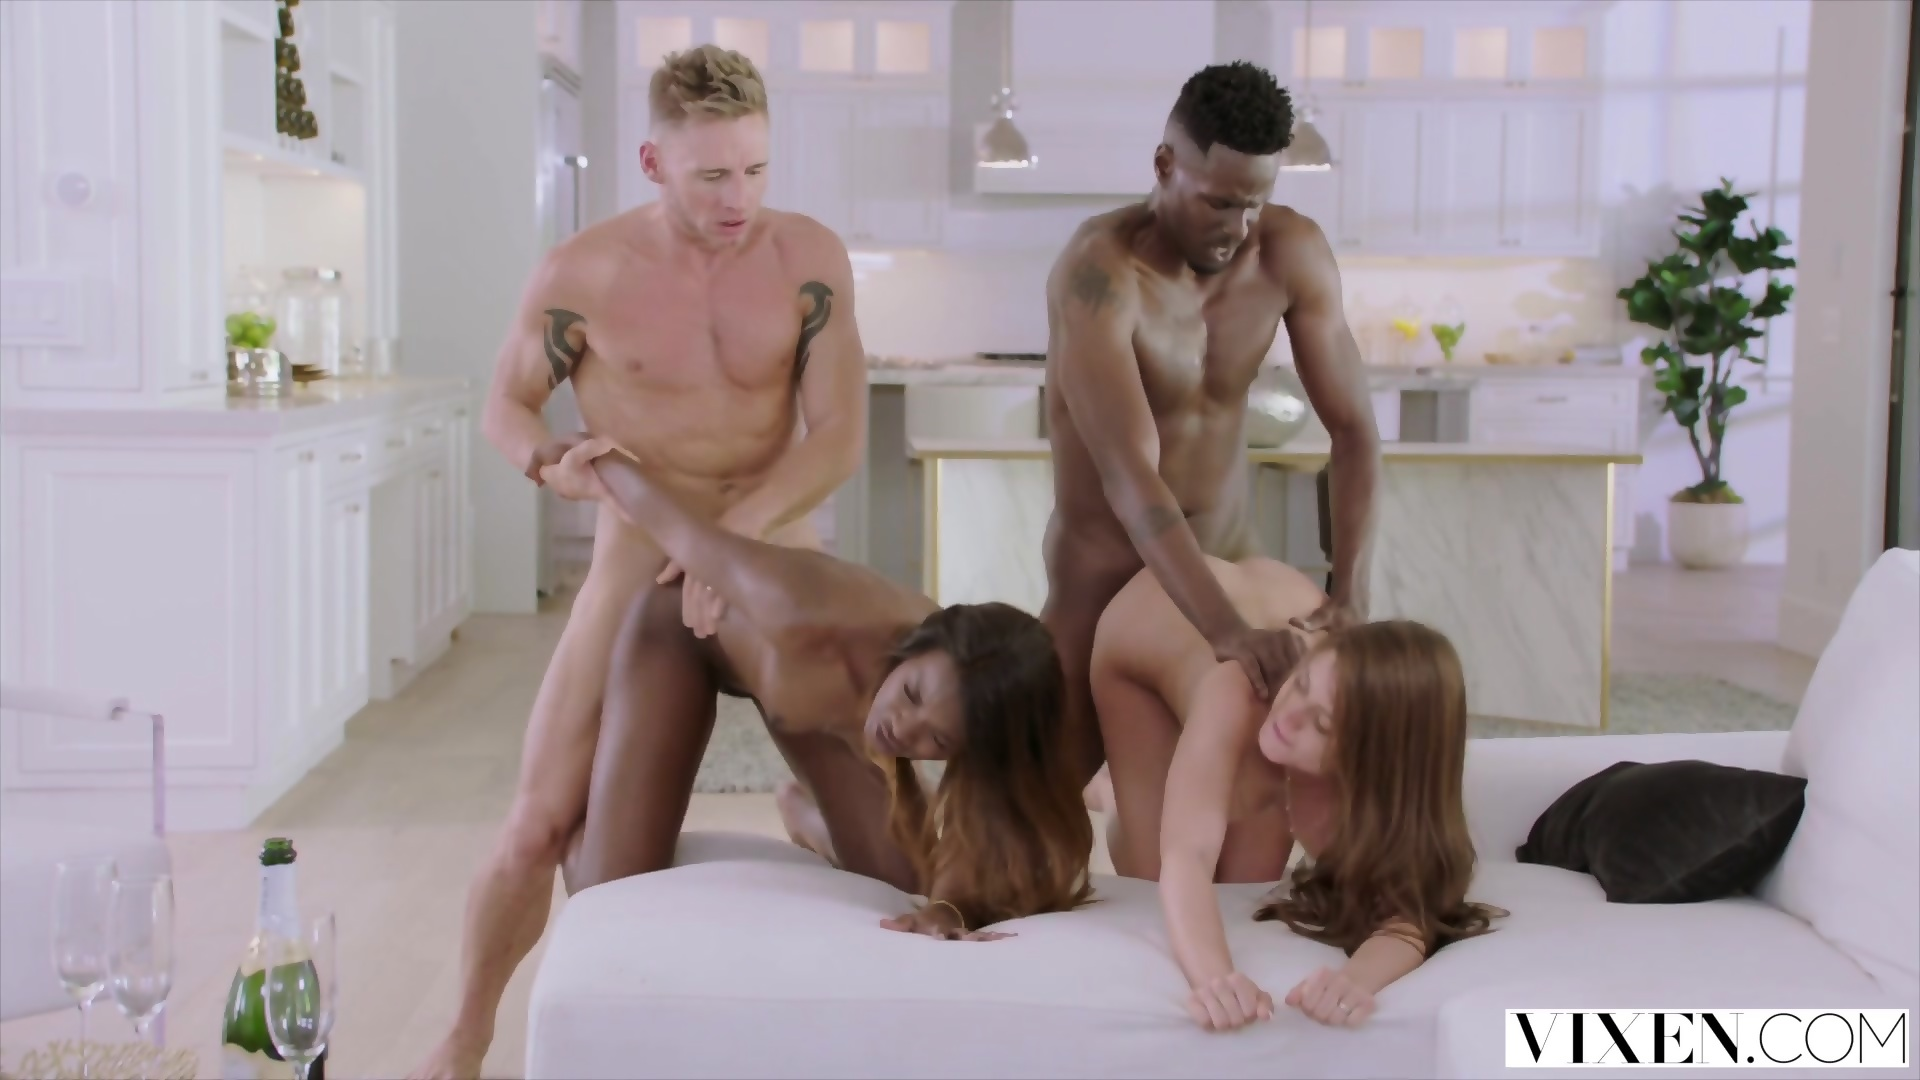 VIXEN Swinger Couple Have Hot Passionate Foursome - scene 12